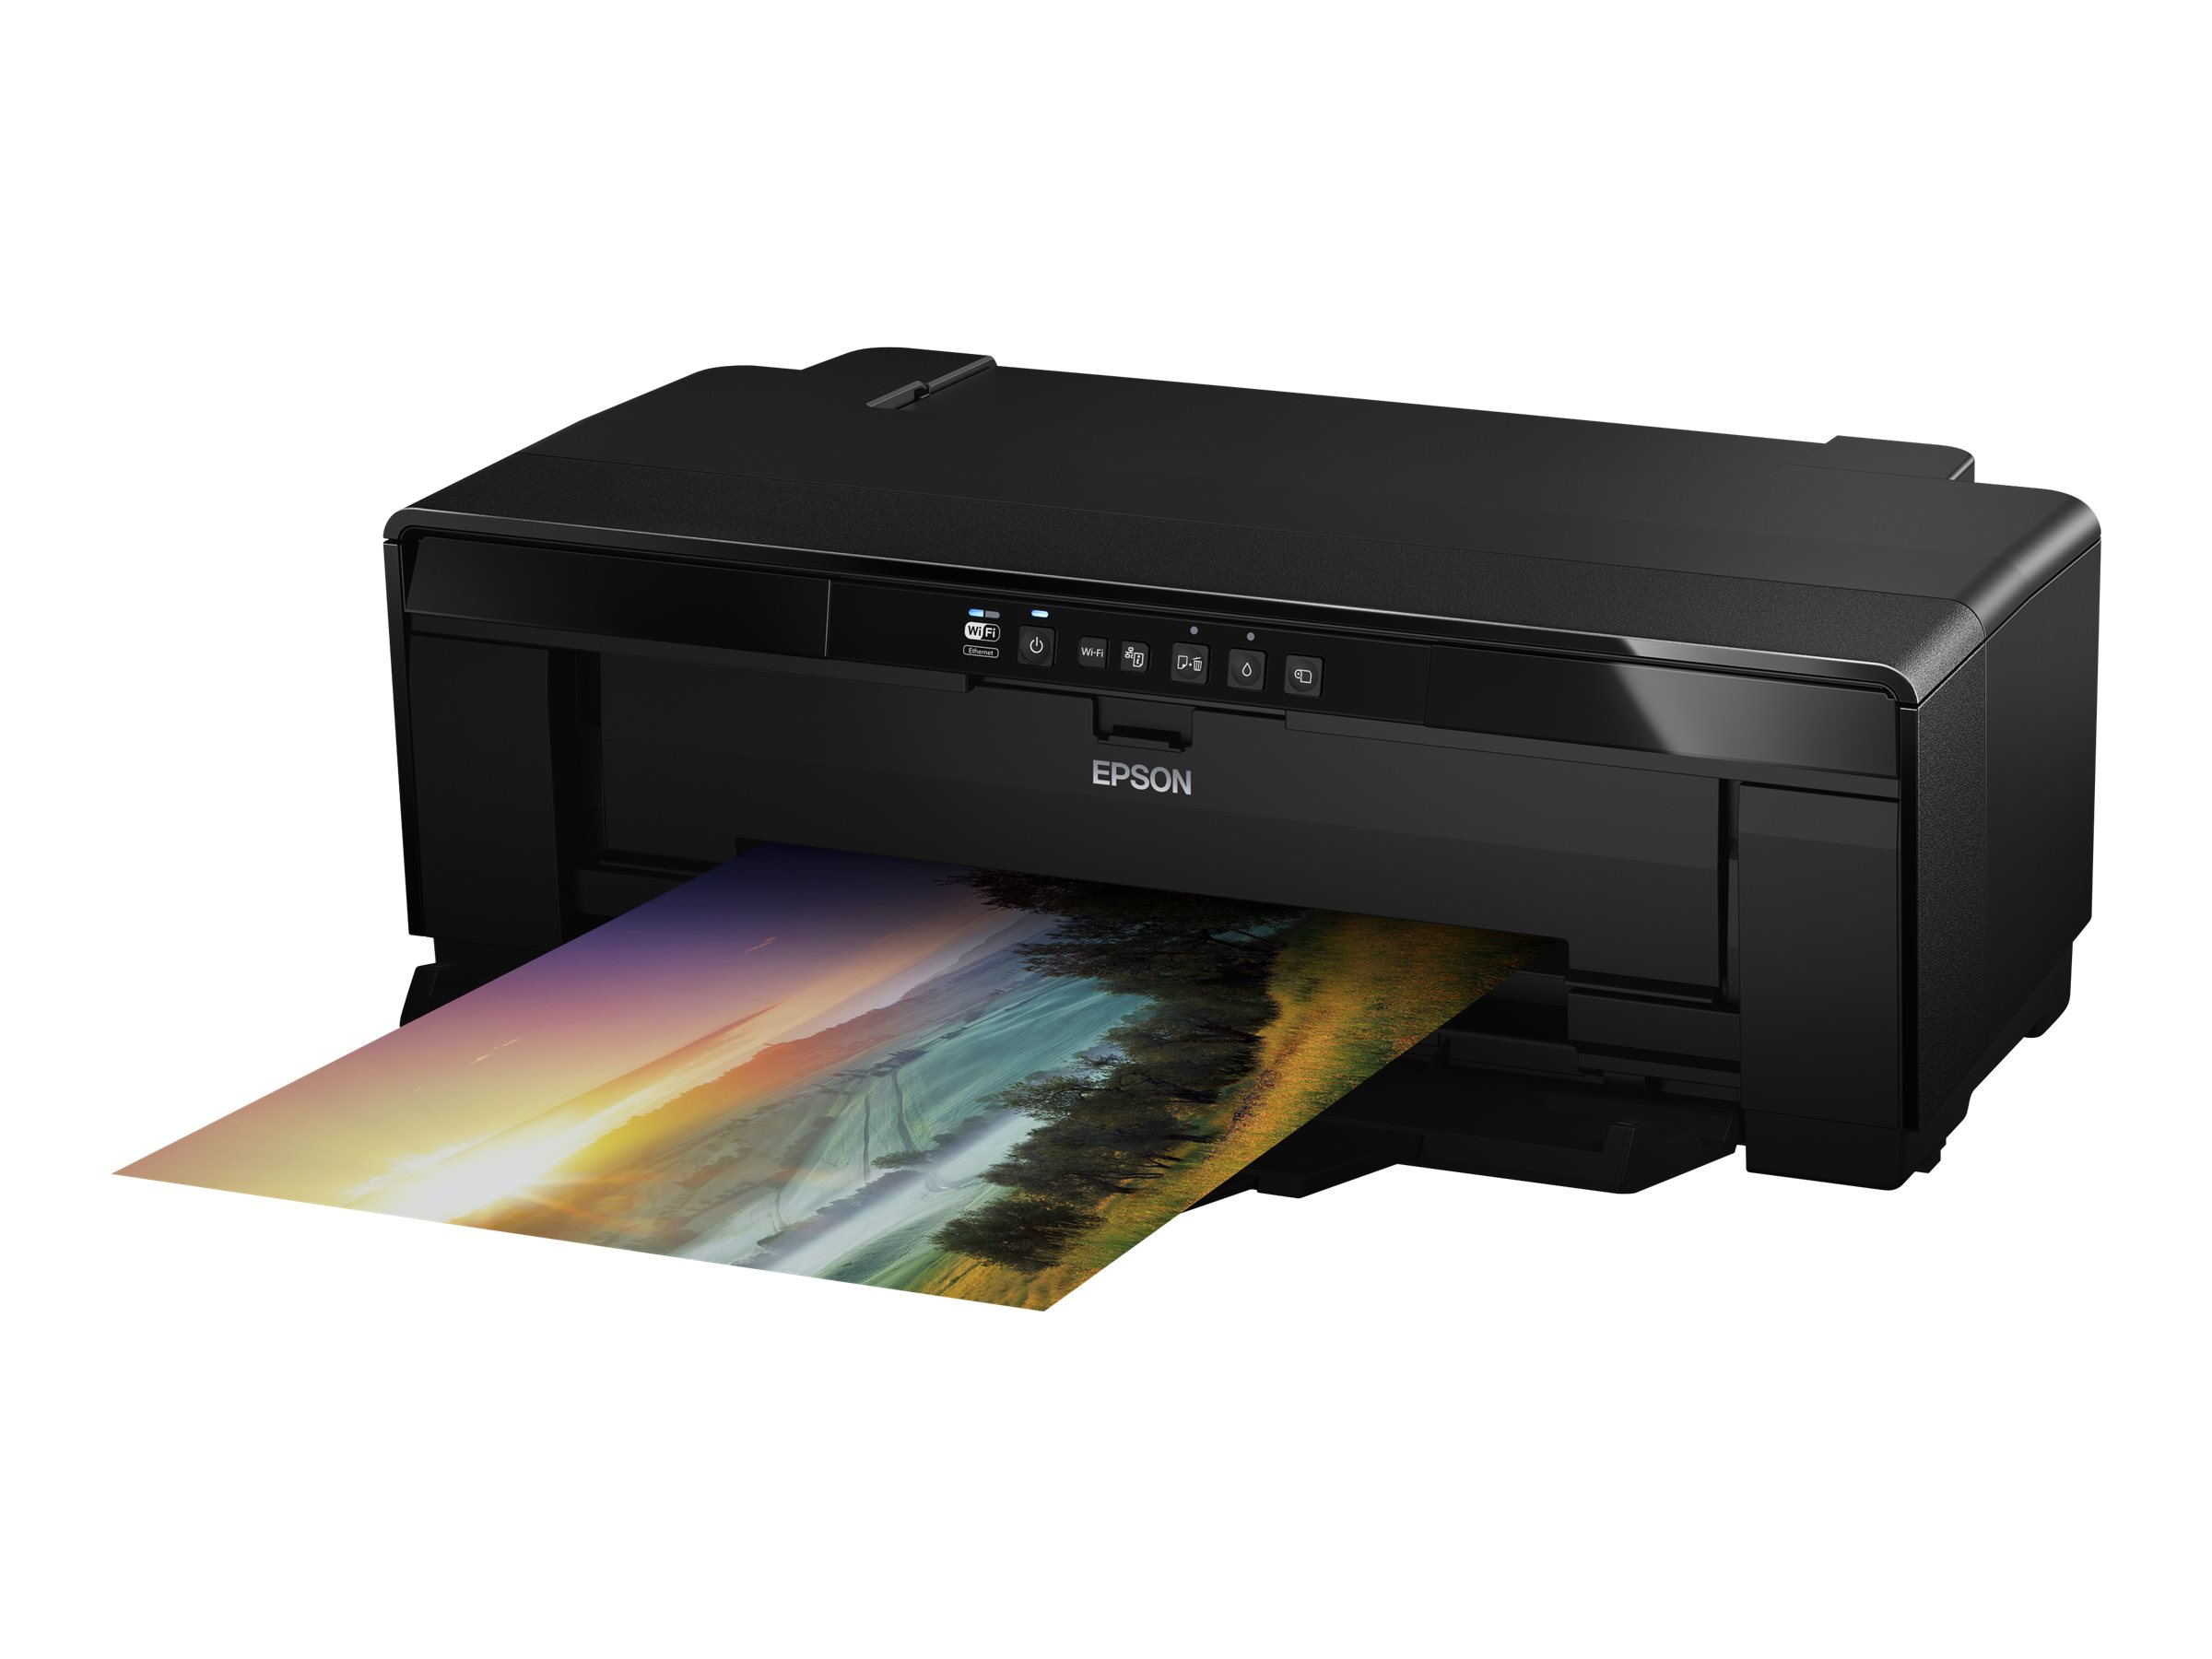 Epson SureColor SC-P400 - Drucker - Farbe - Tintenstrahl - A3 - 5760 x 1440 dpi